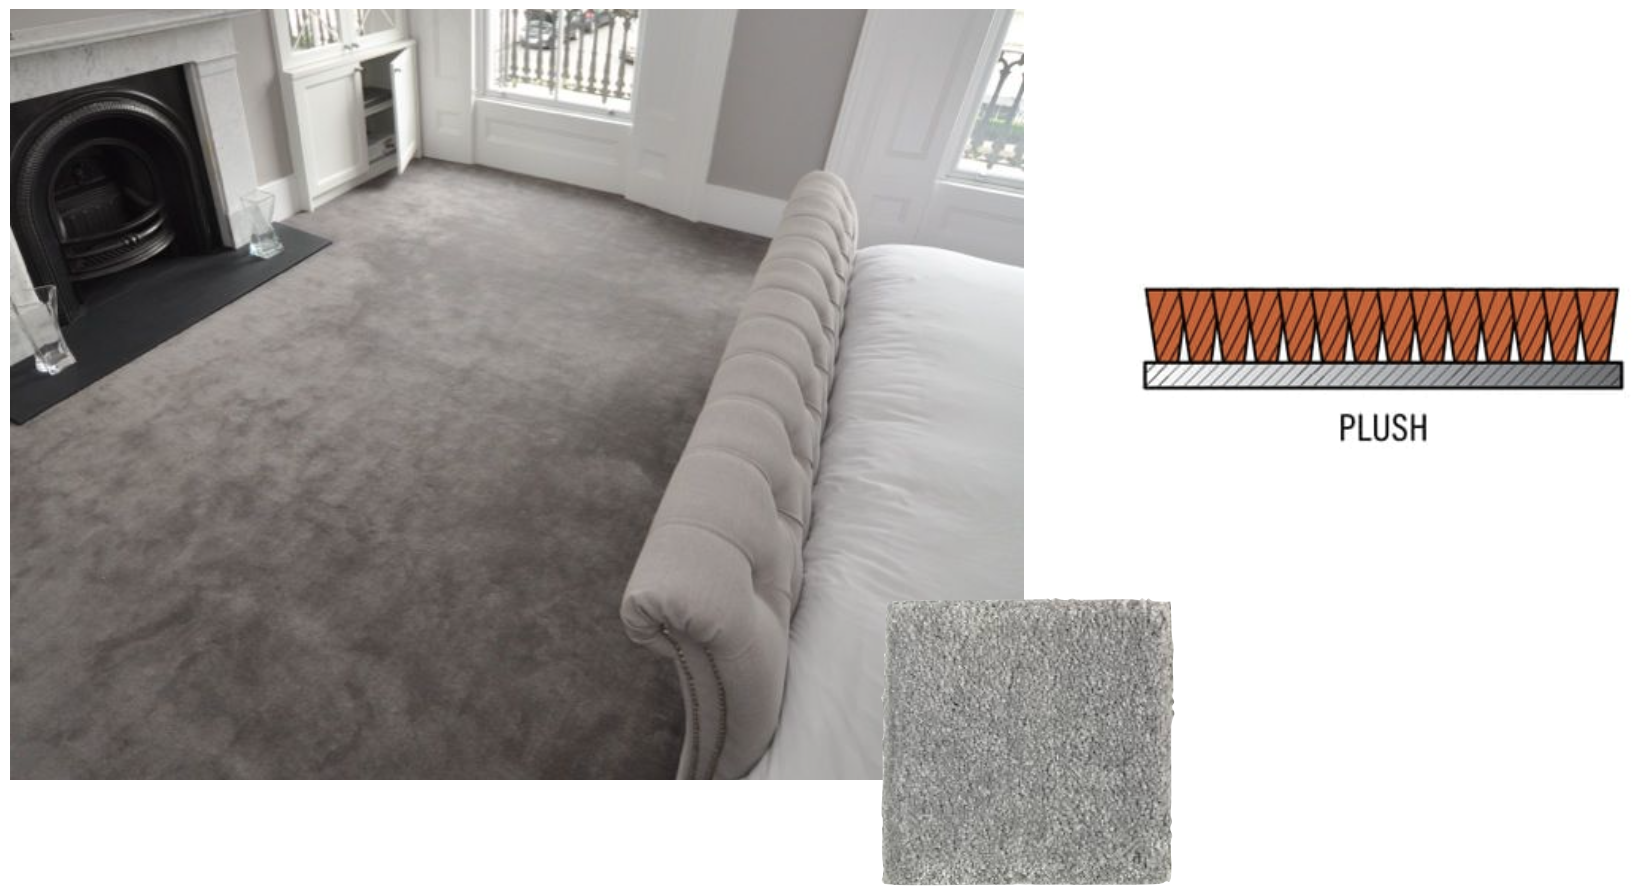 Loops, Plush, & Berber, oh my! – The best carpet pile style ...